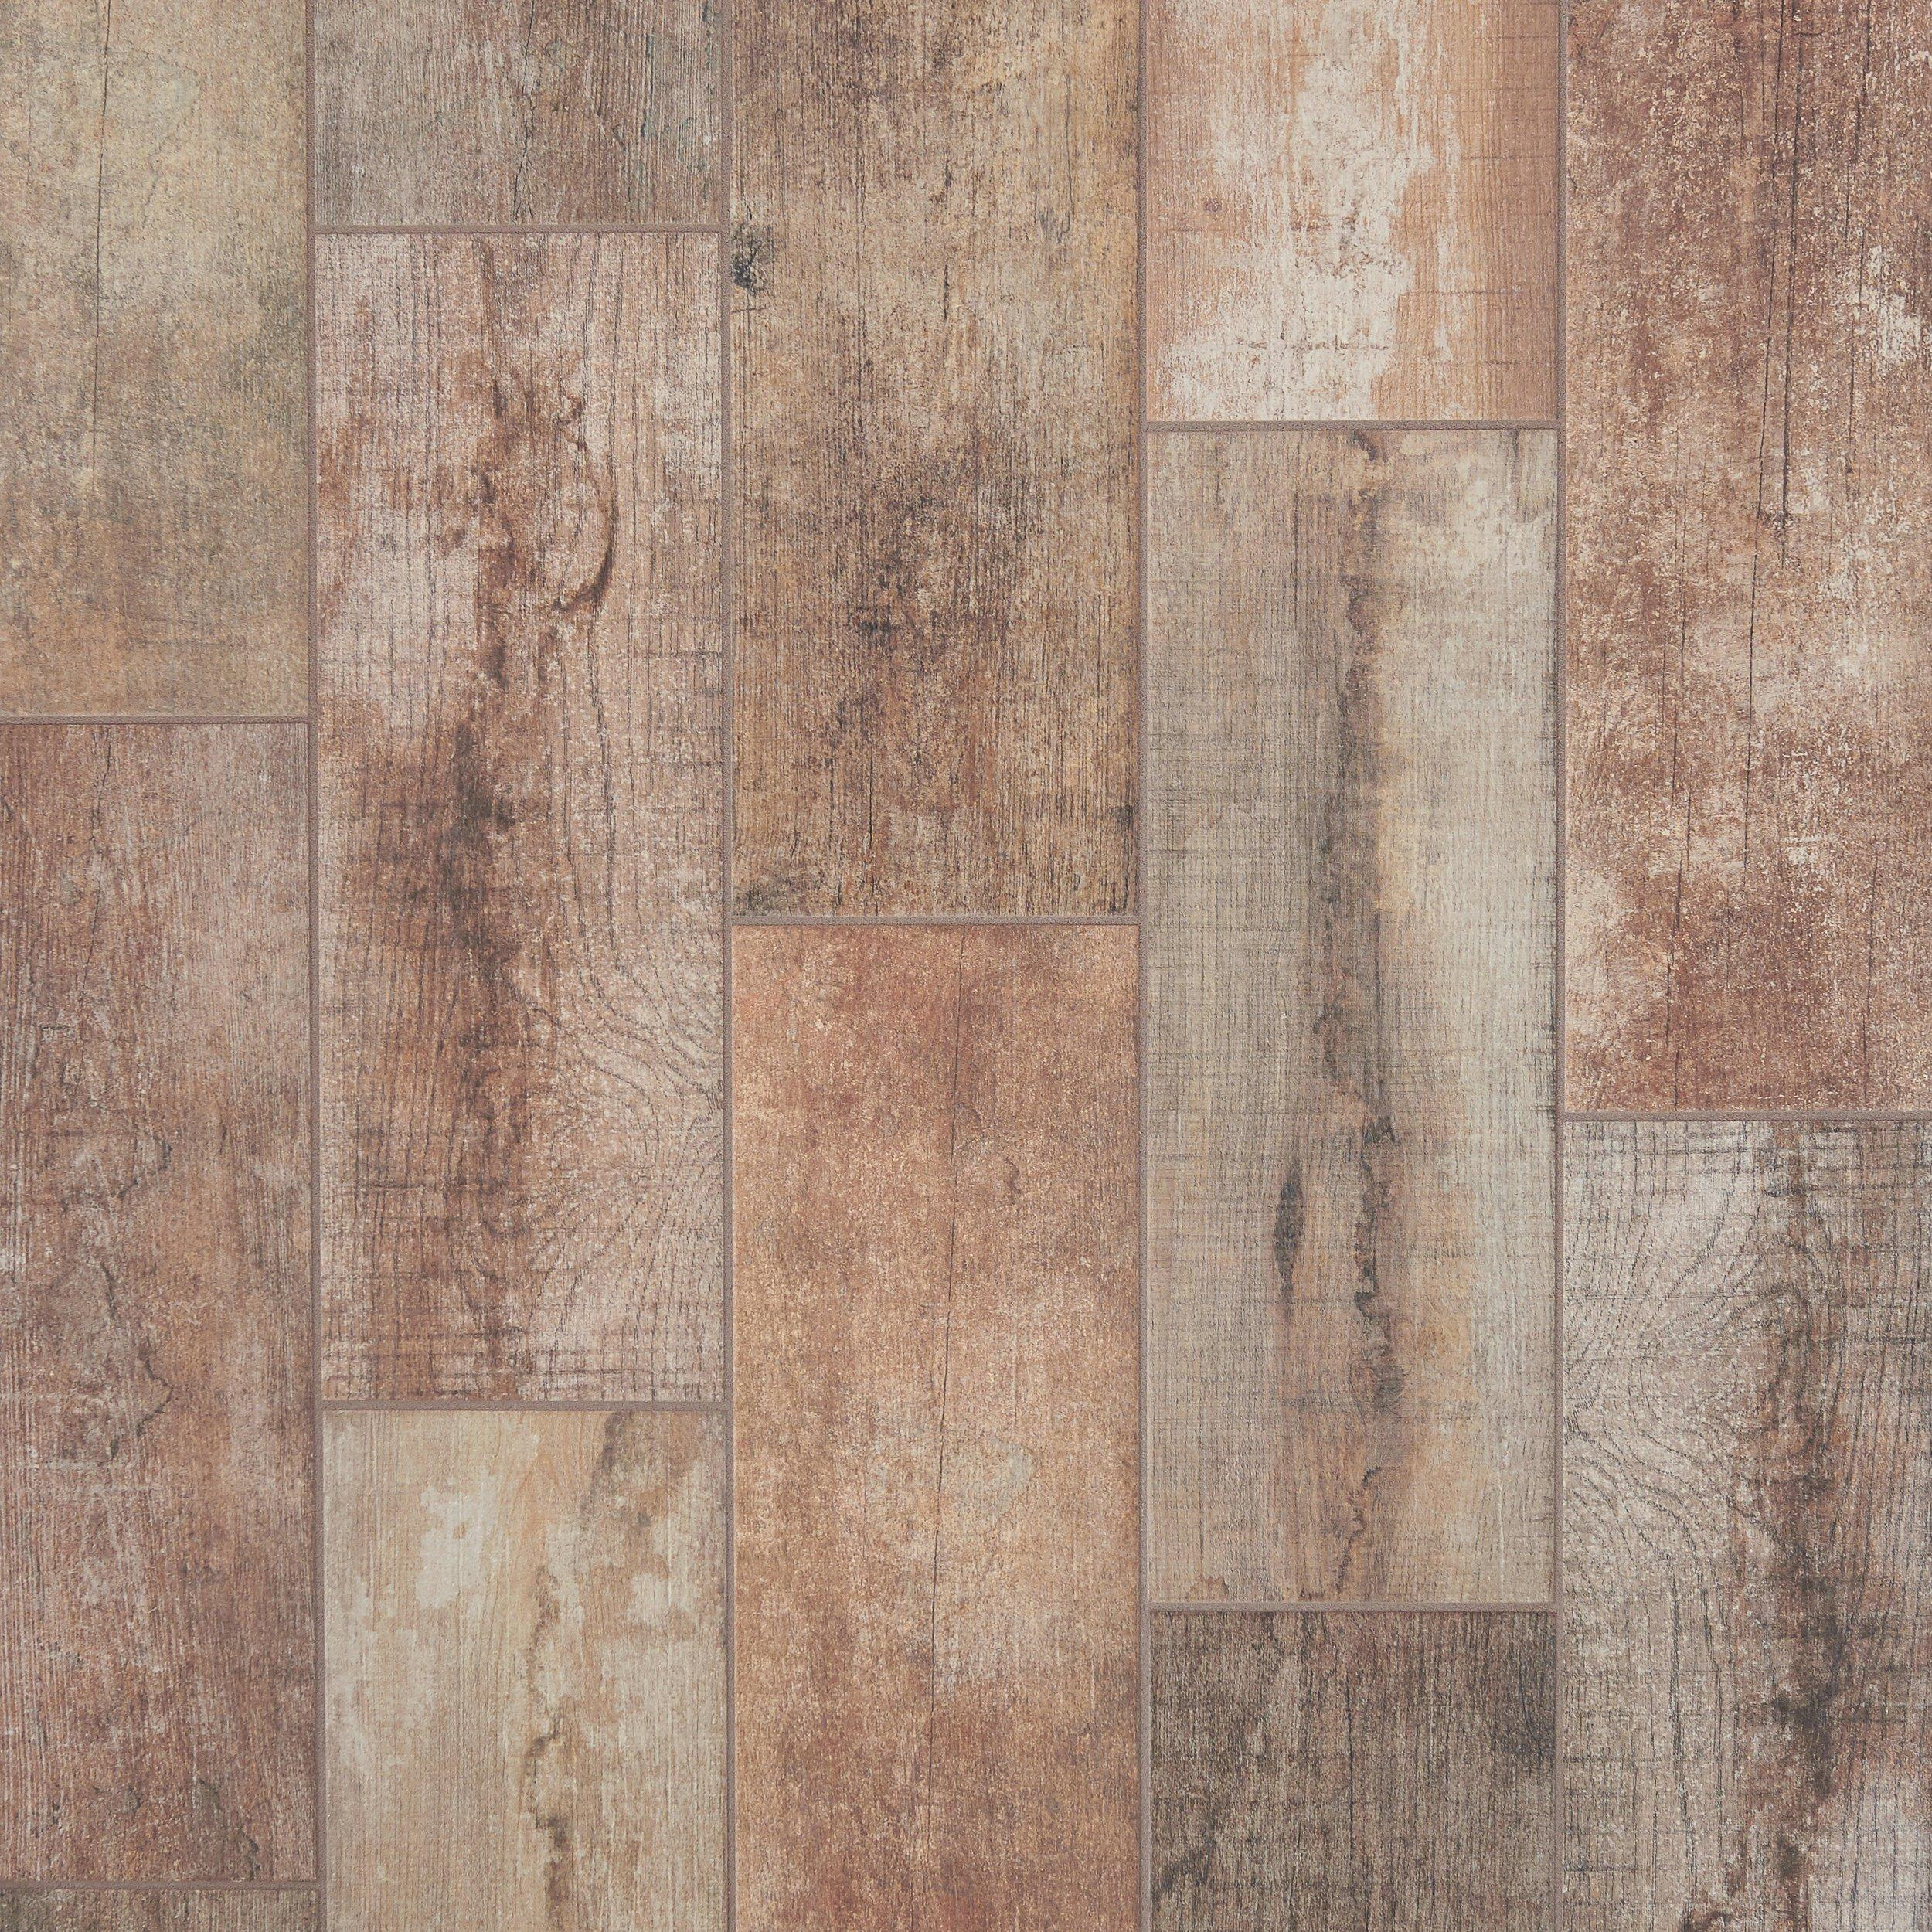 julyo wood plank ceramic tile DCXTWHY